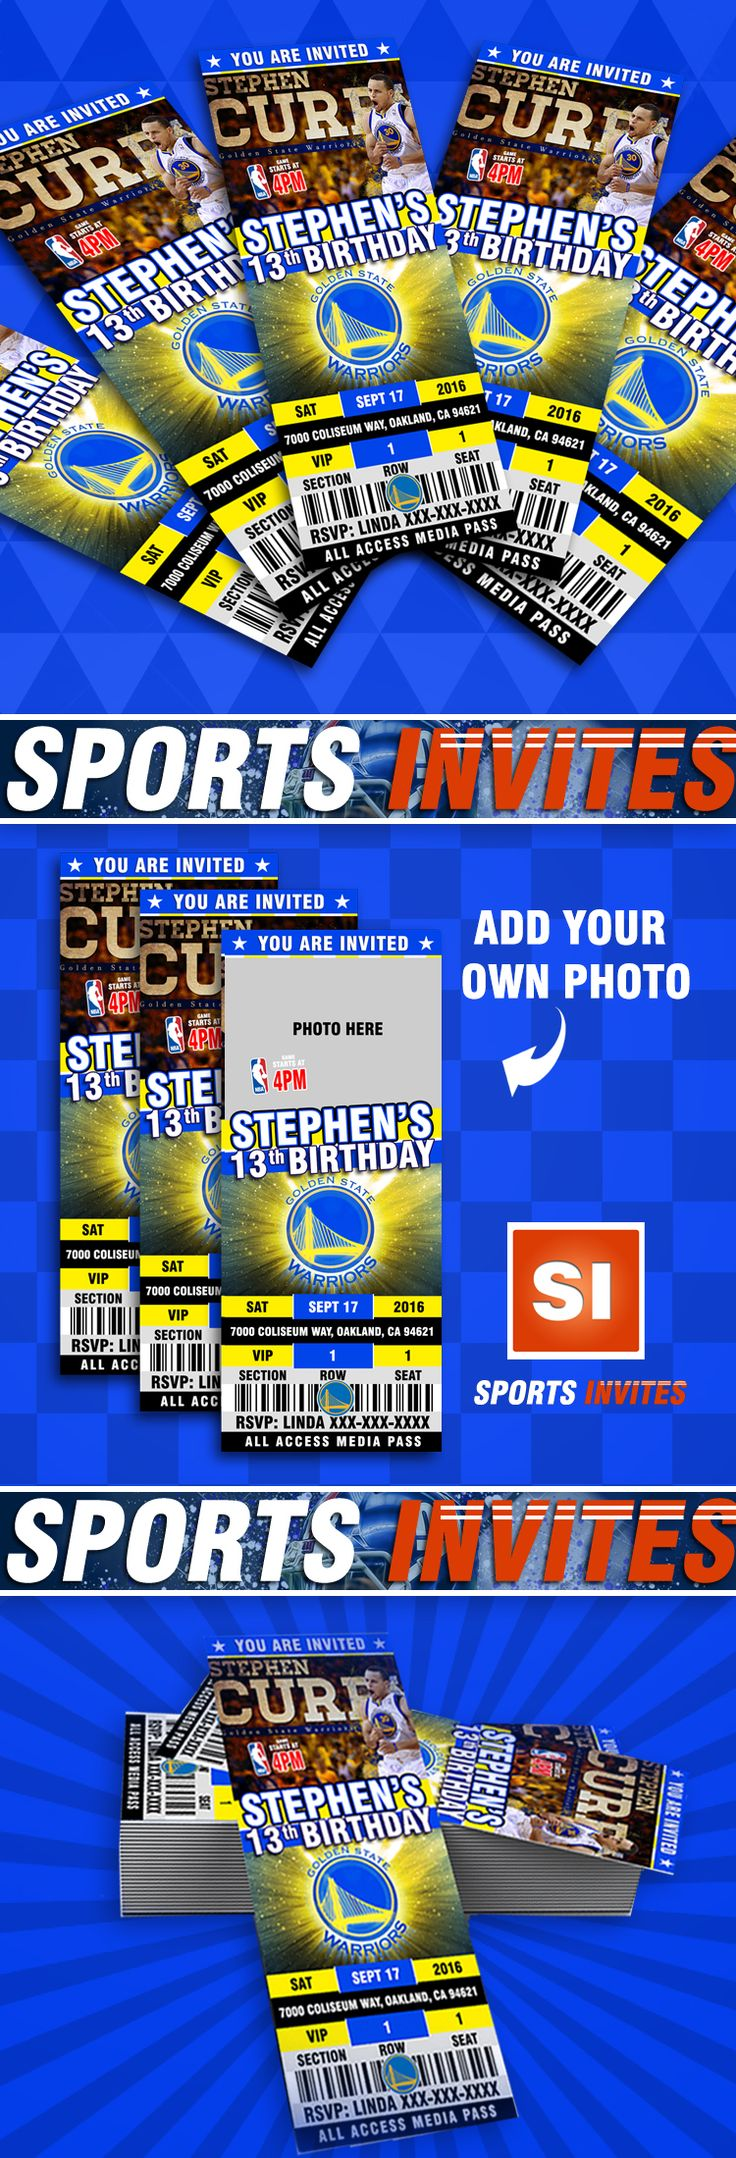 Golden State Warriors Sports Party Invitations by Sports Invites Customize anyway you like!